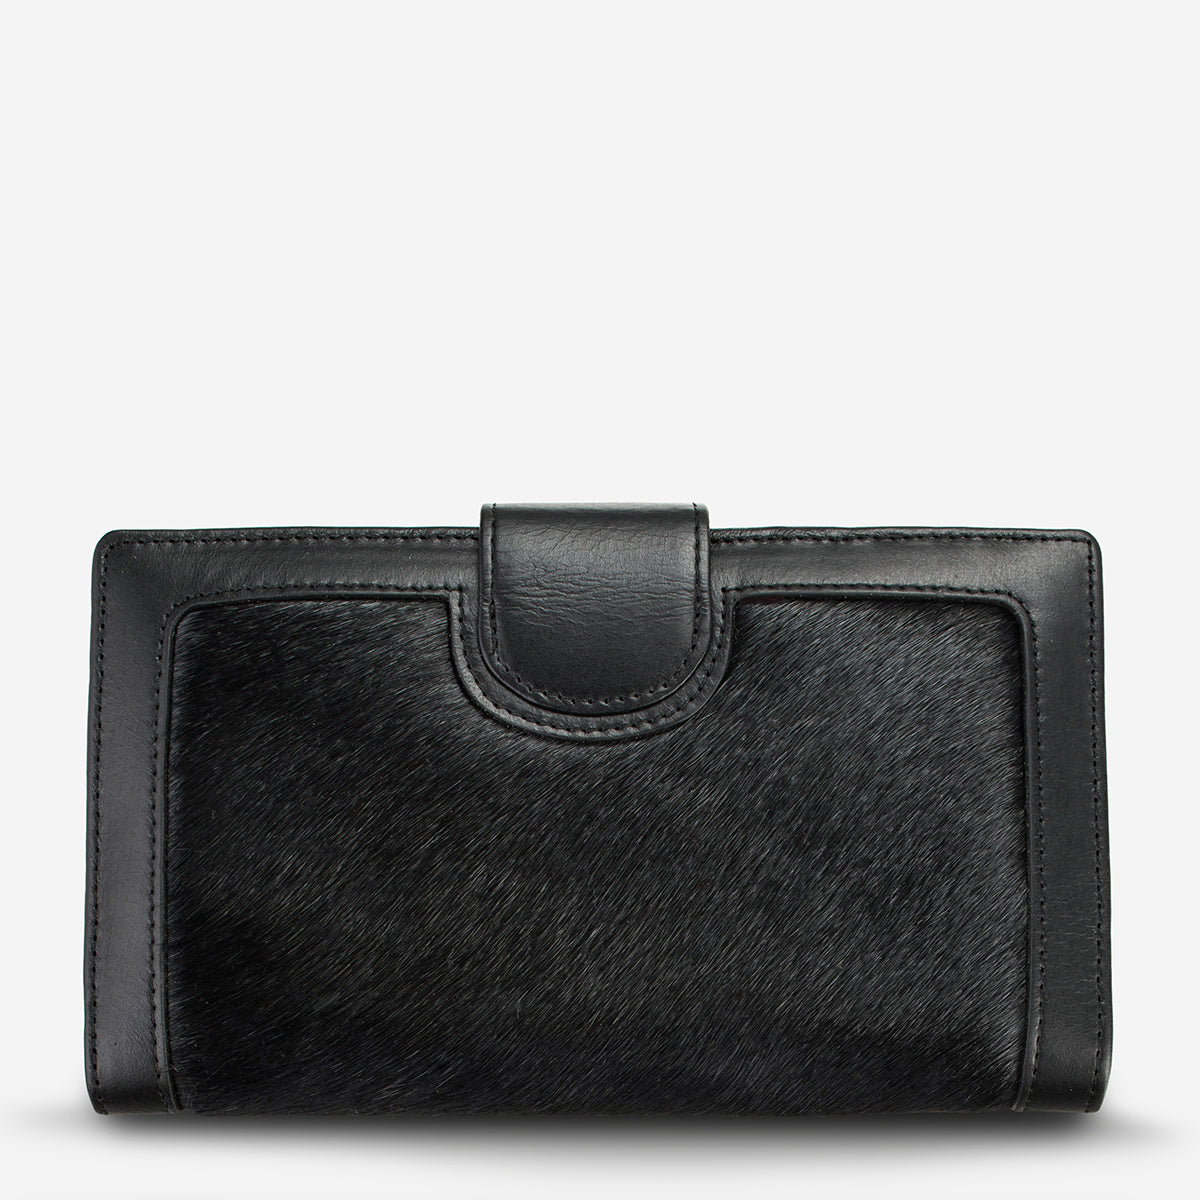 Status Anxiety Doris Large Leather Wallet - Black